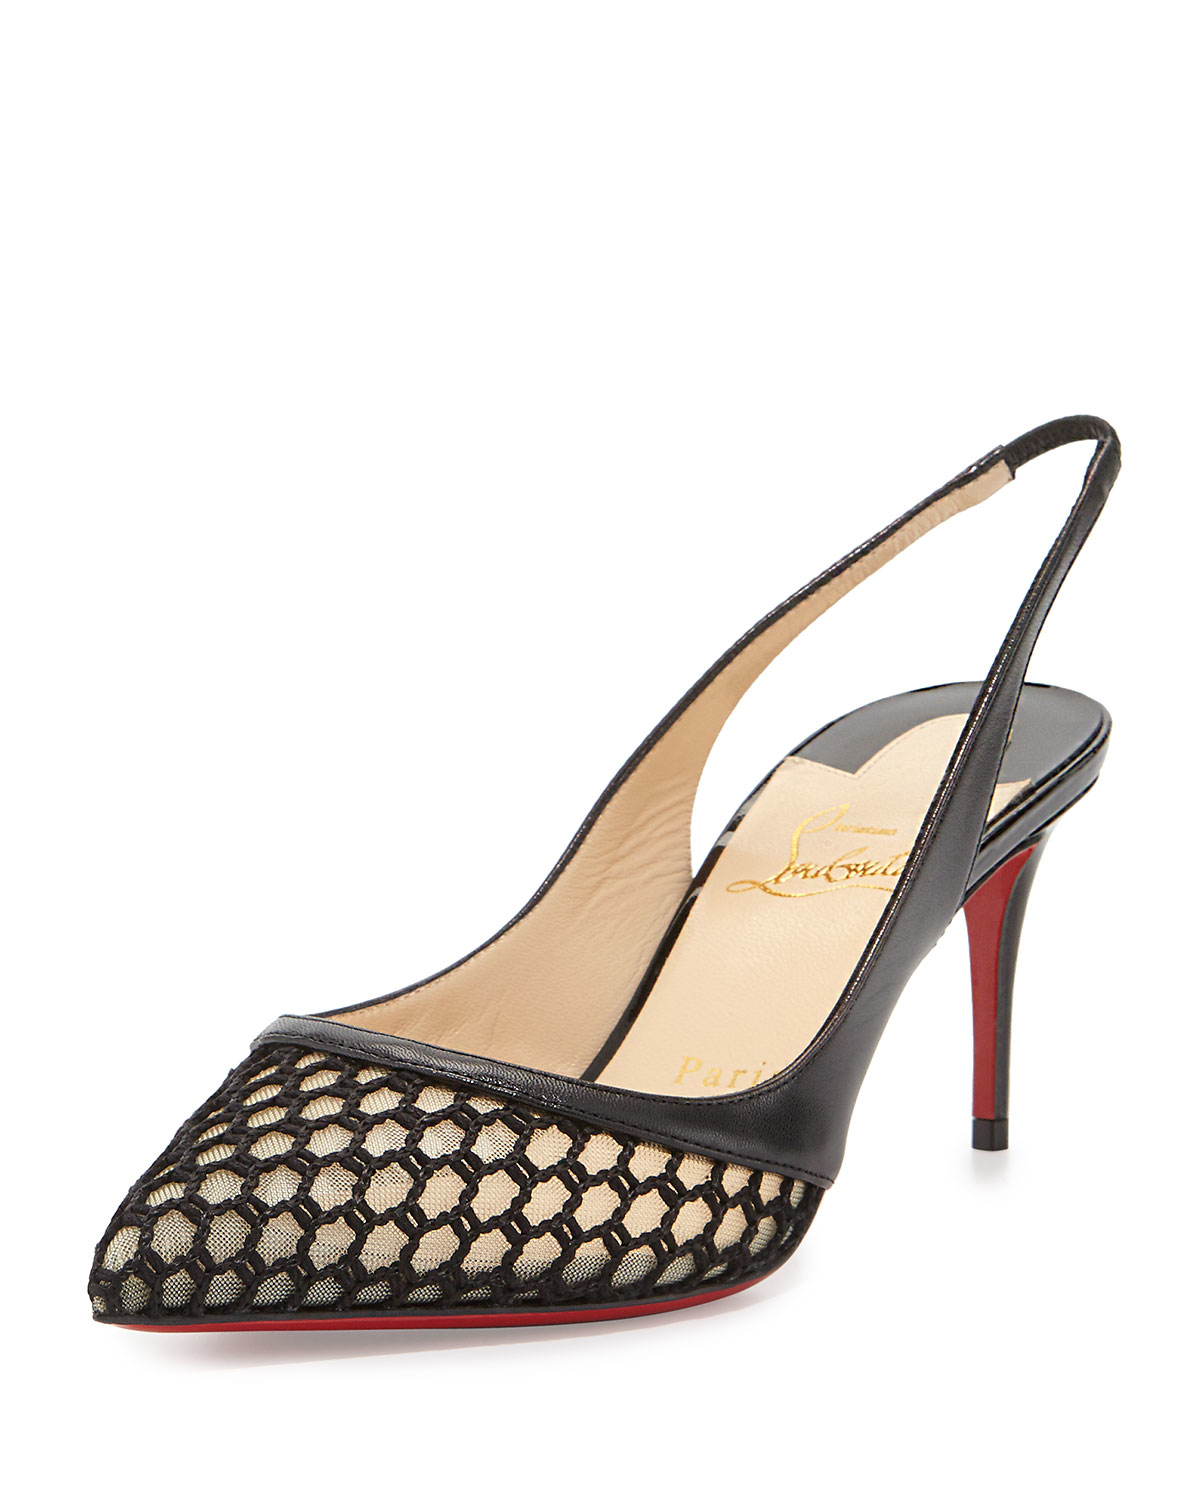 christian louboutin shoes on sale fake - Christian louboutin Miluna Low-heel Slingback Red Sole Pump in ...